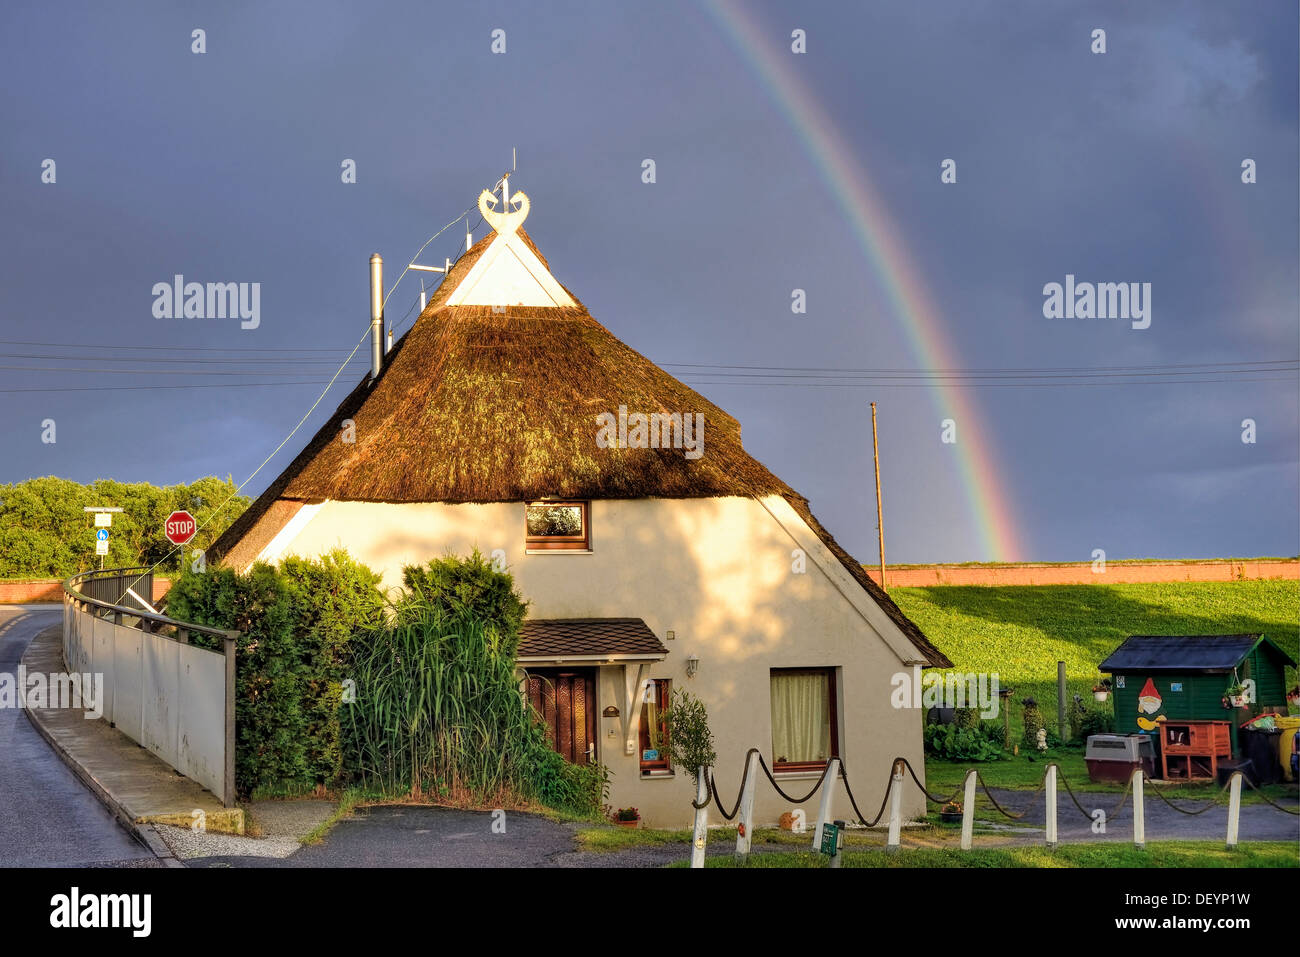 Rainbows and half-timbered house in Kirchwerder, 4 and marshy land, Hamburg, Germany, Europe, Regenbogen und Fachwerkhaus in Kir - Stock Image